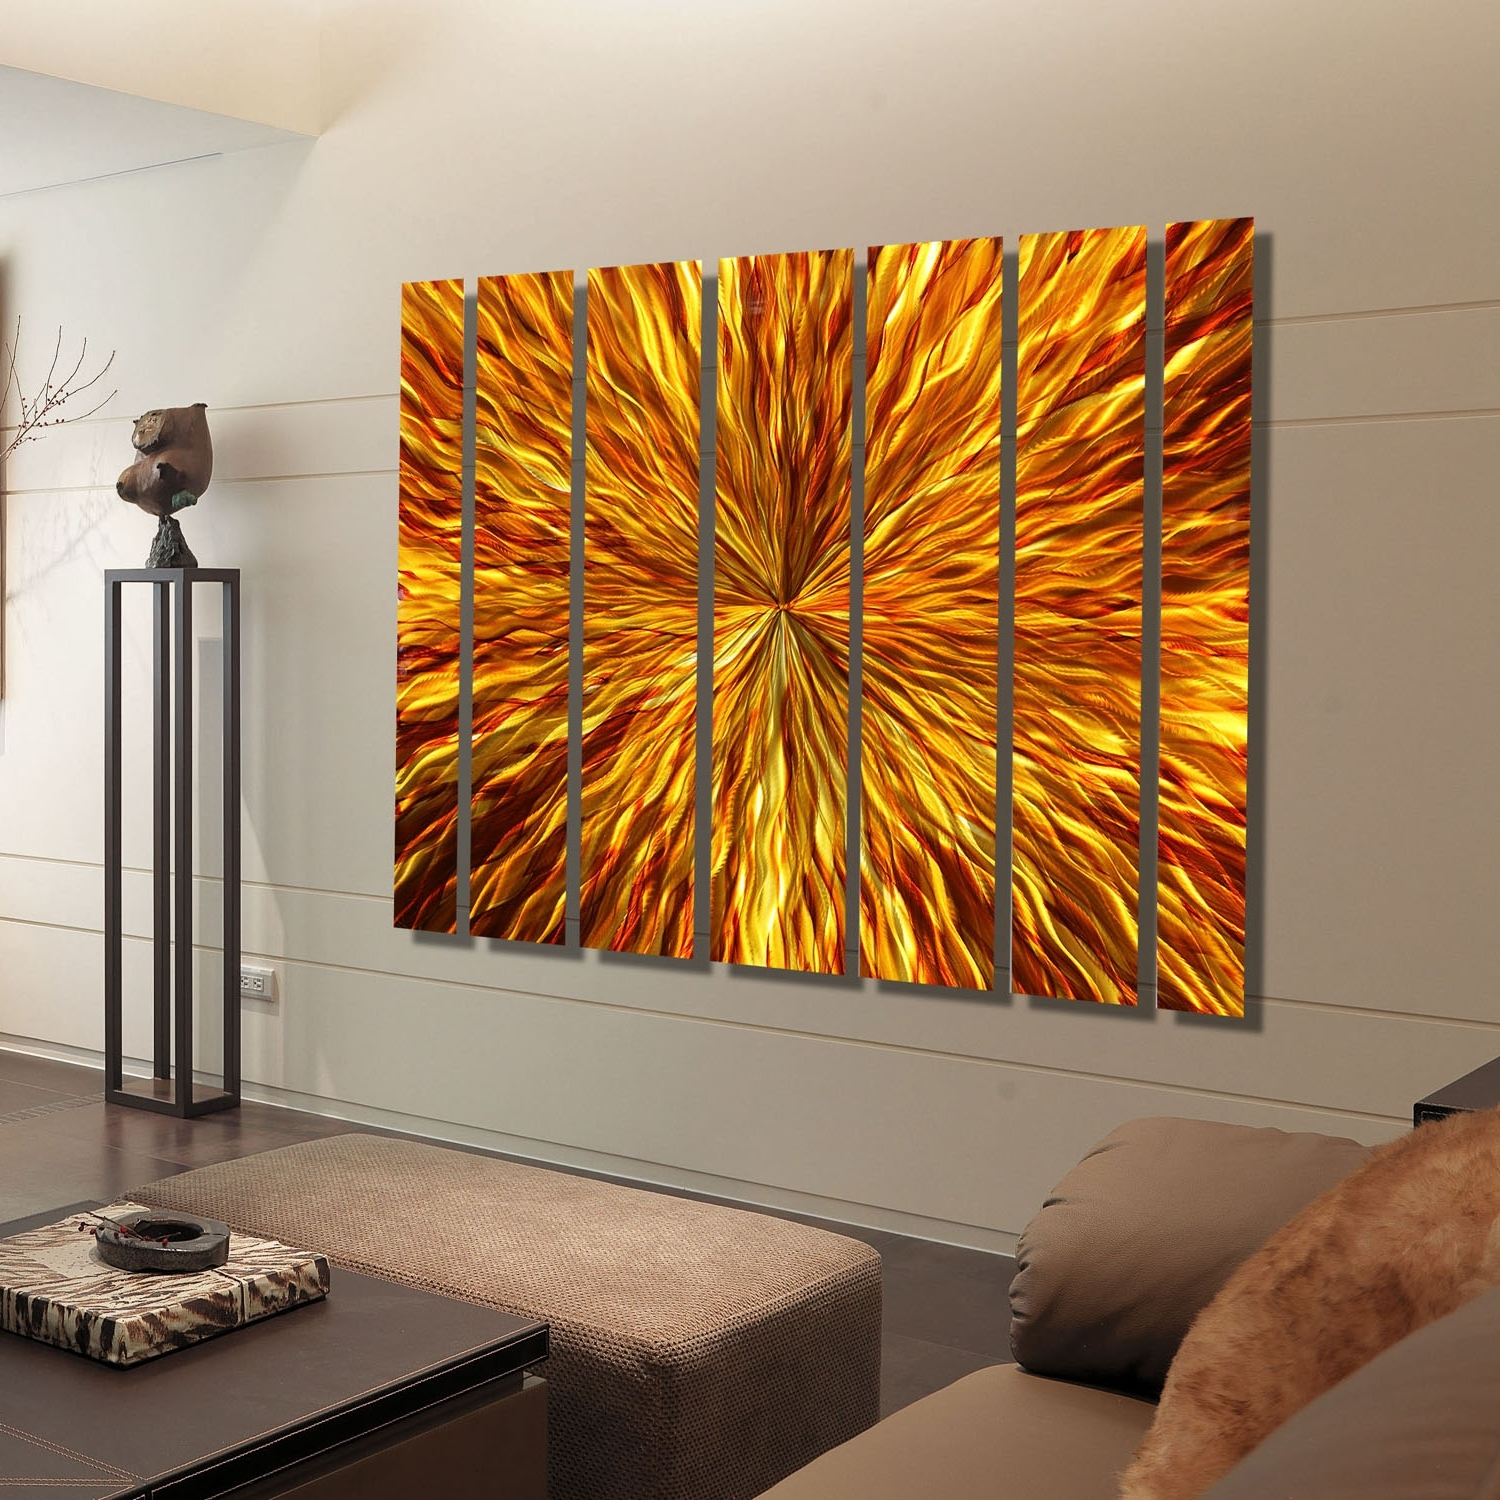 Abstract Metal Wall Art Pertaining To Preferred Amber Vortex Xl – Extra Large Modern Metal Wall Artjon Allen (View 6 of 15)